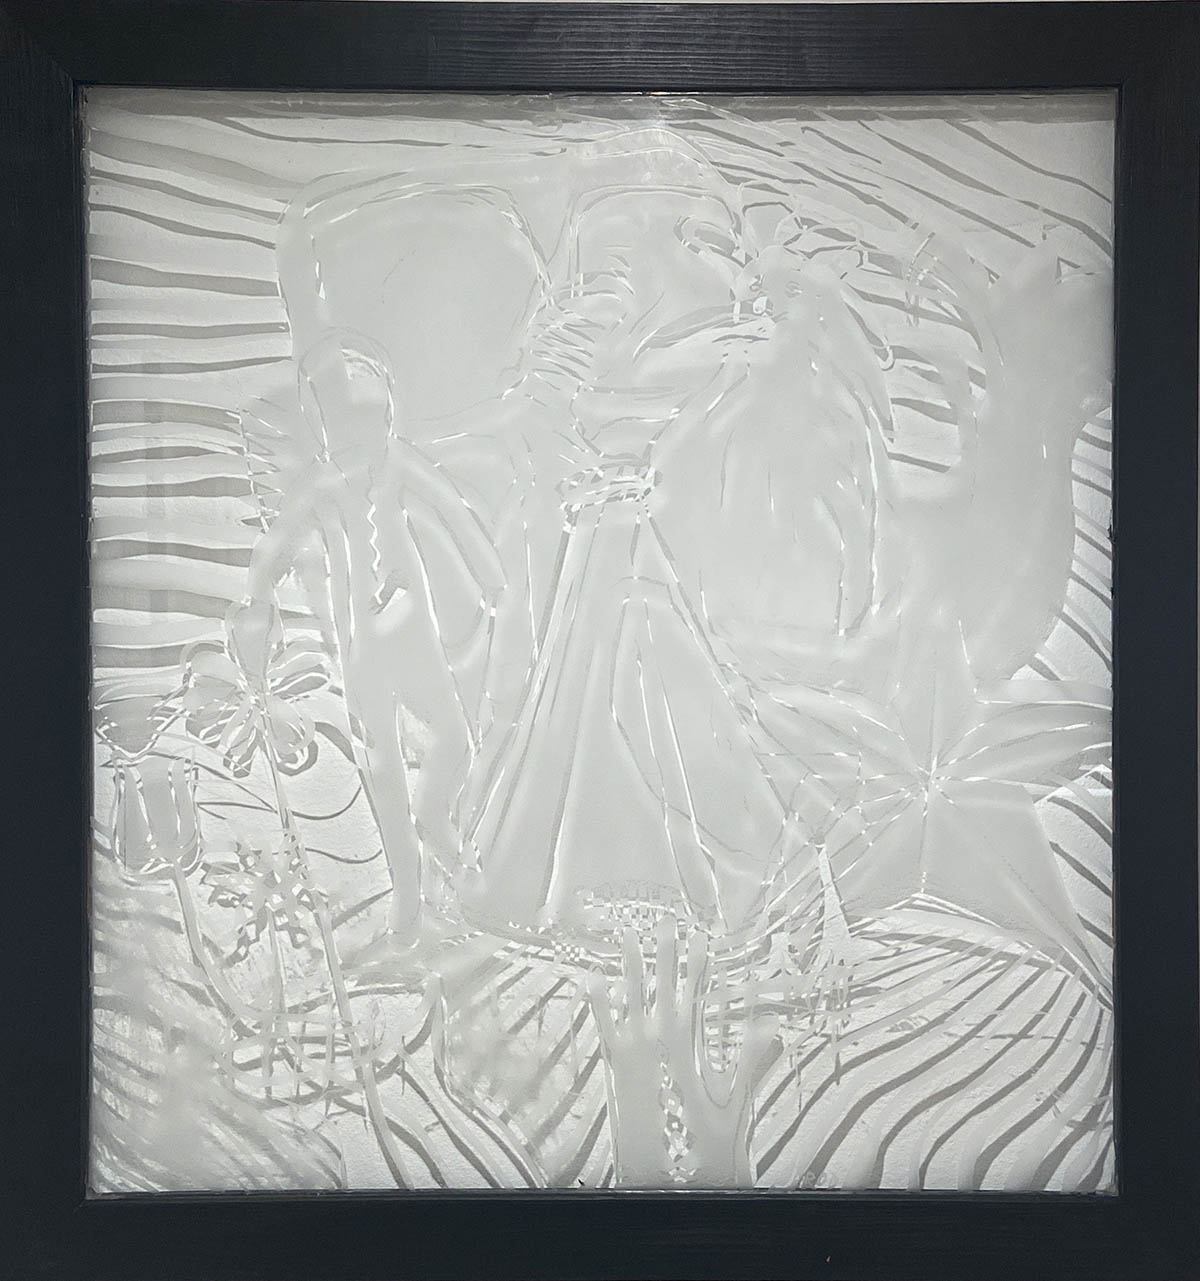 Etched glass artwork by Jennifer Rod.